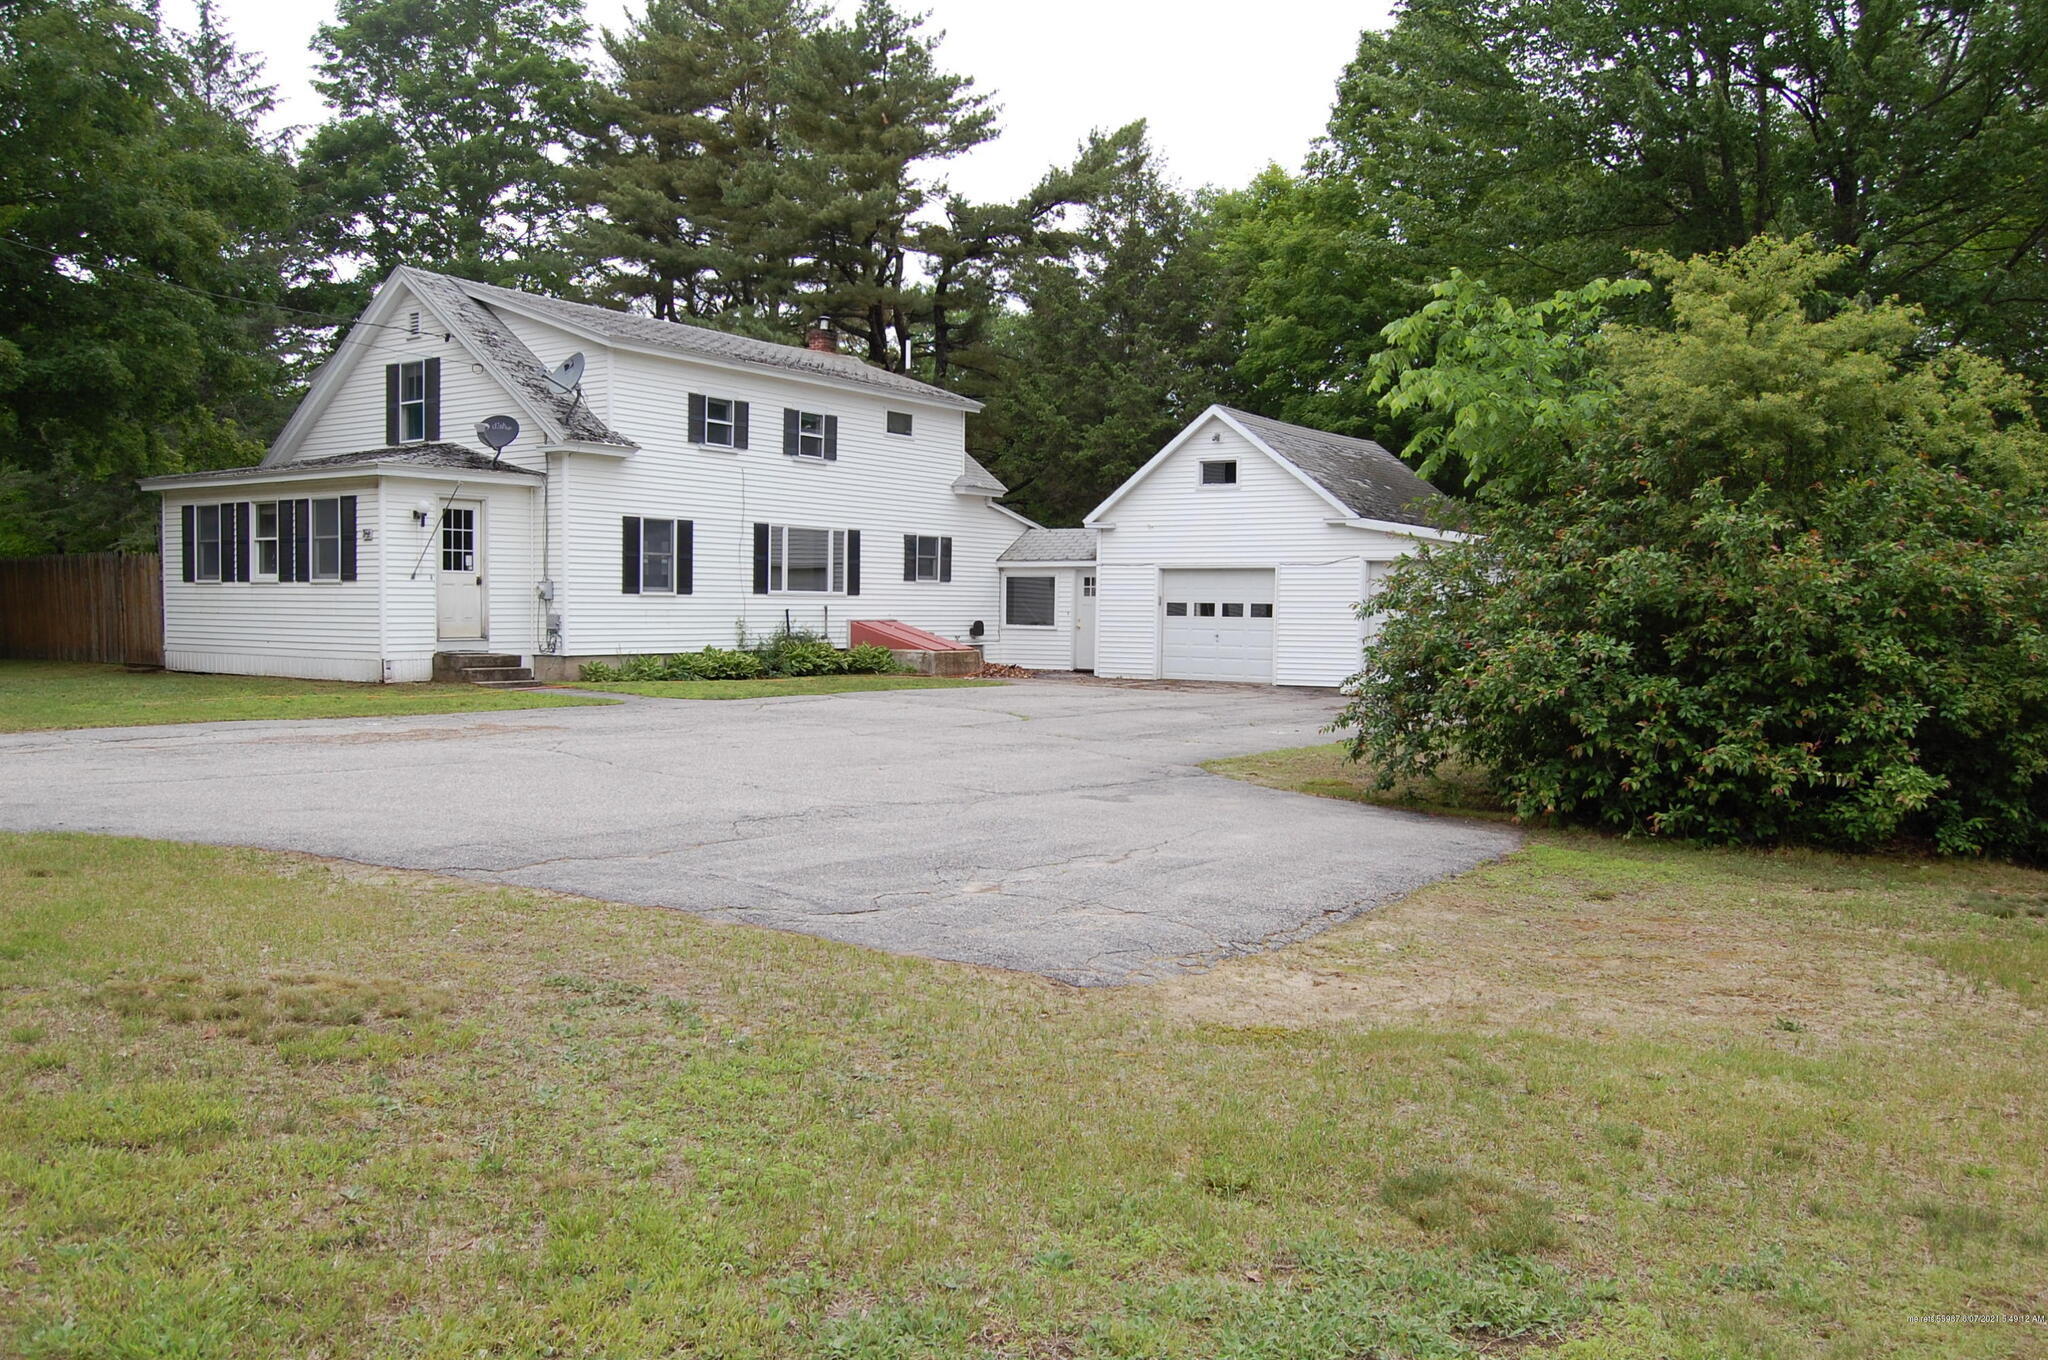 262 Lewiston Street, Mechanic Falls, ME | MLS# 1403629